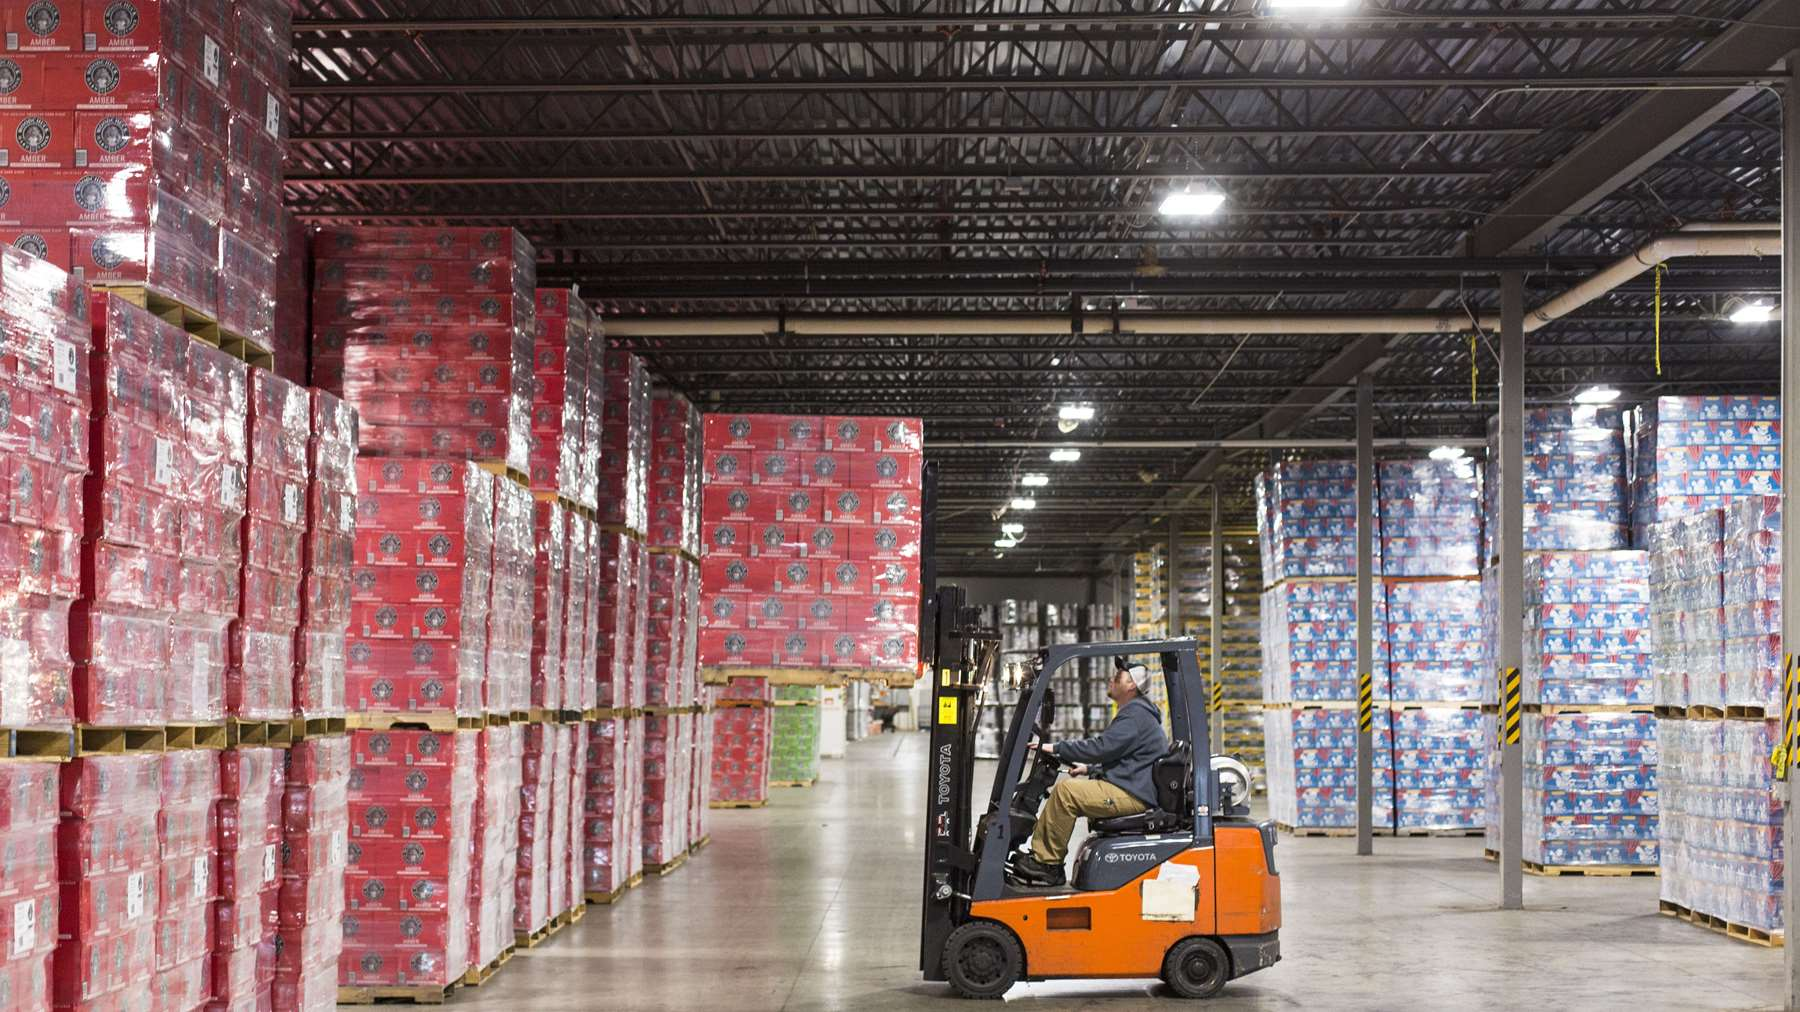 A man on a forklift moving towards stacks of boxed hard cider